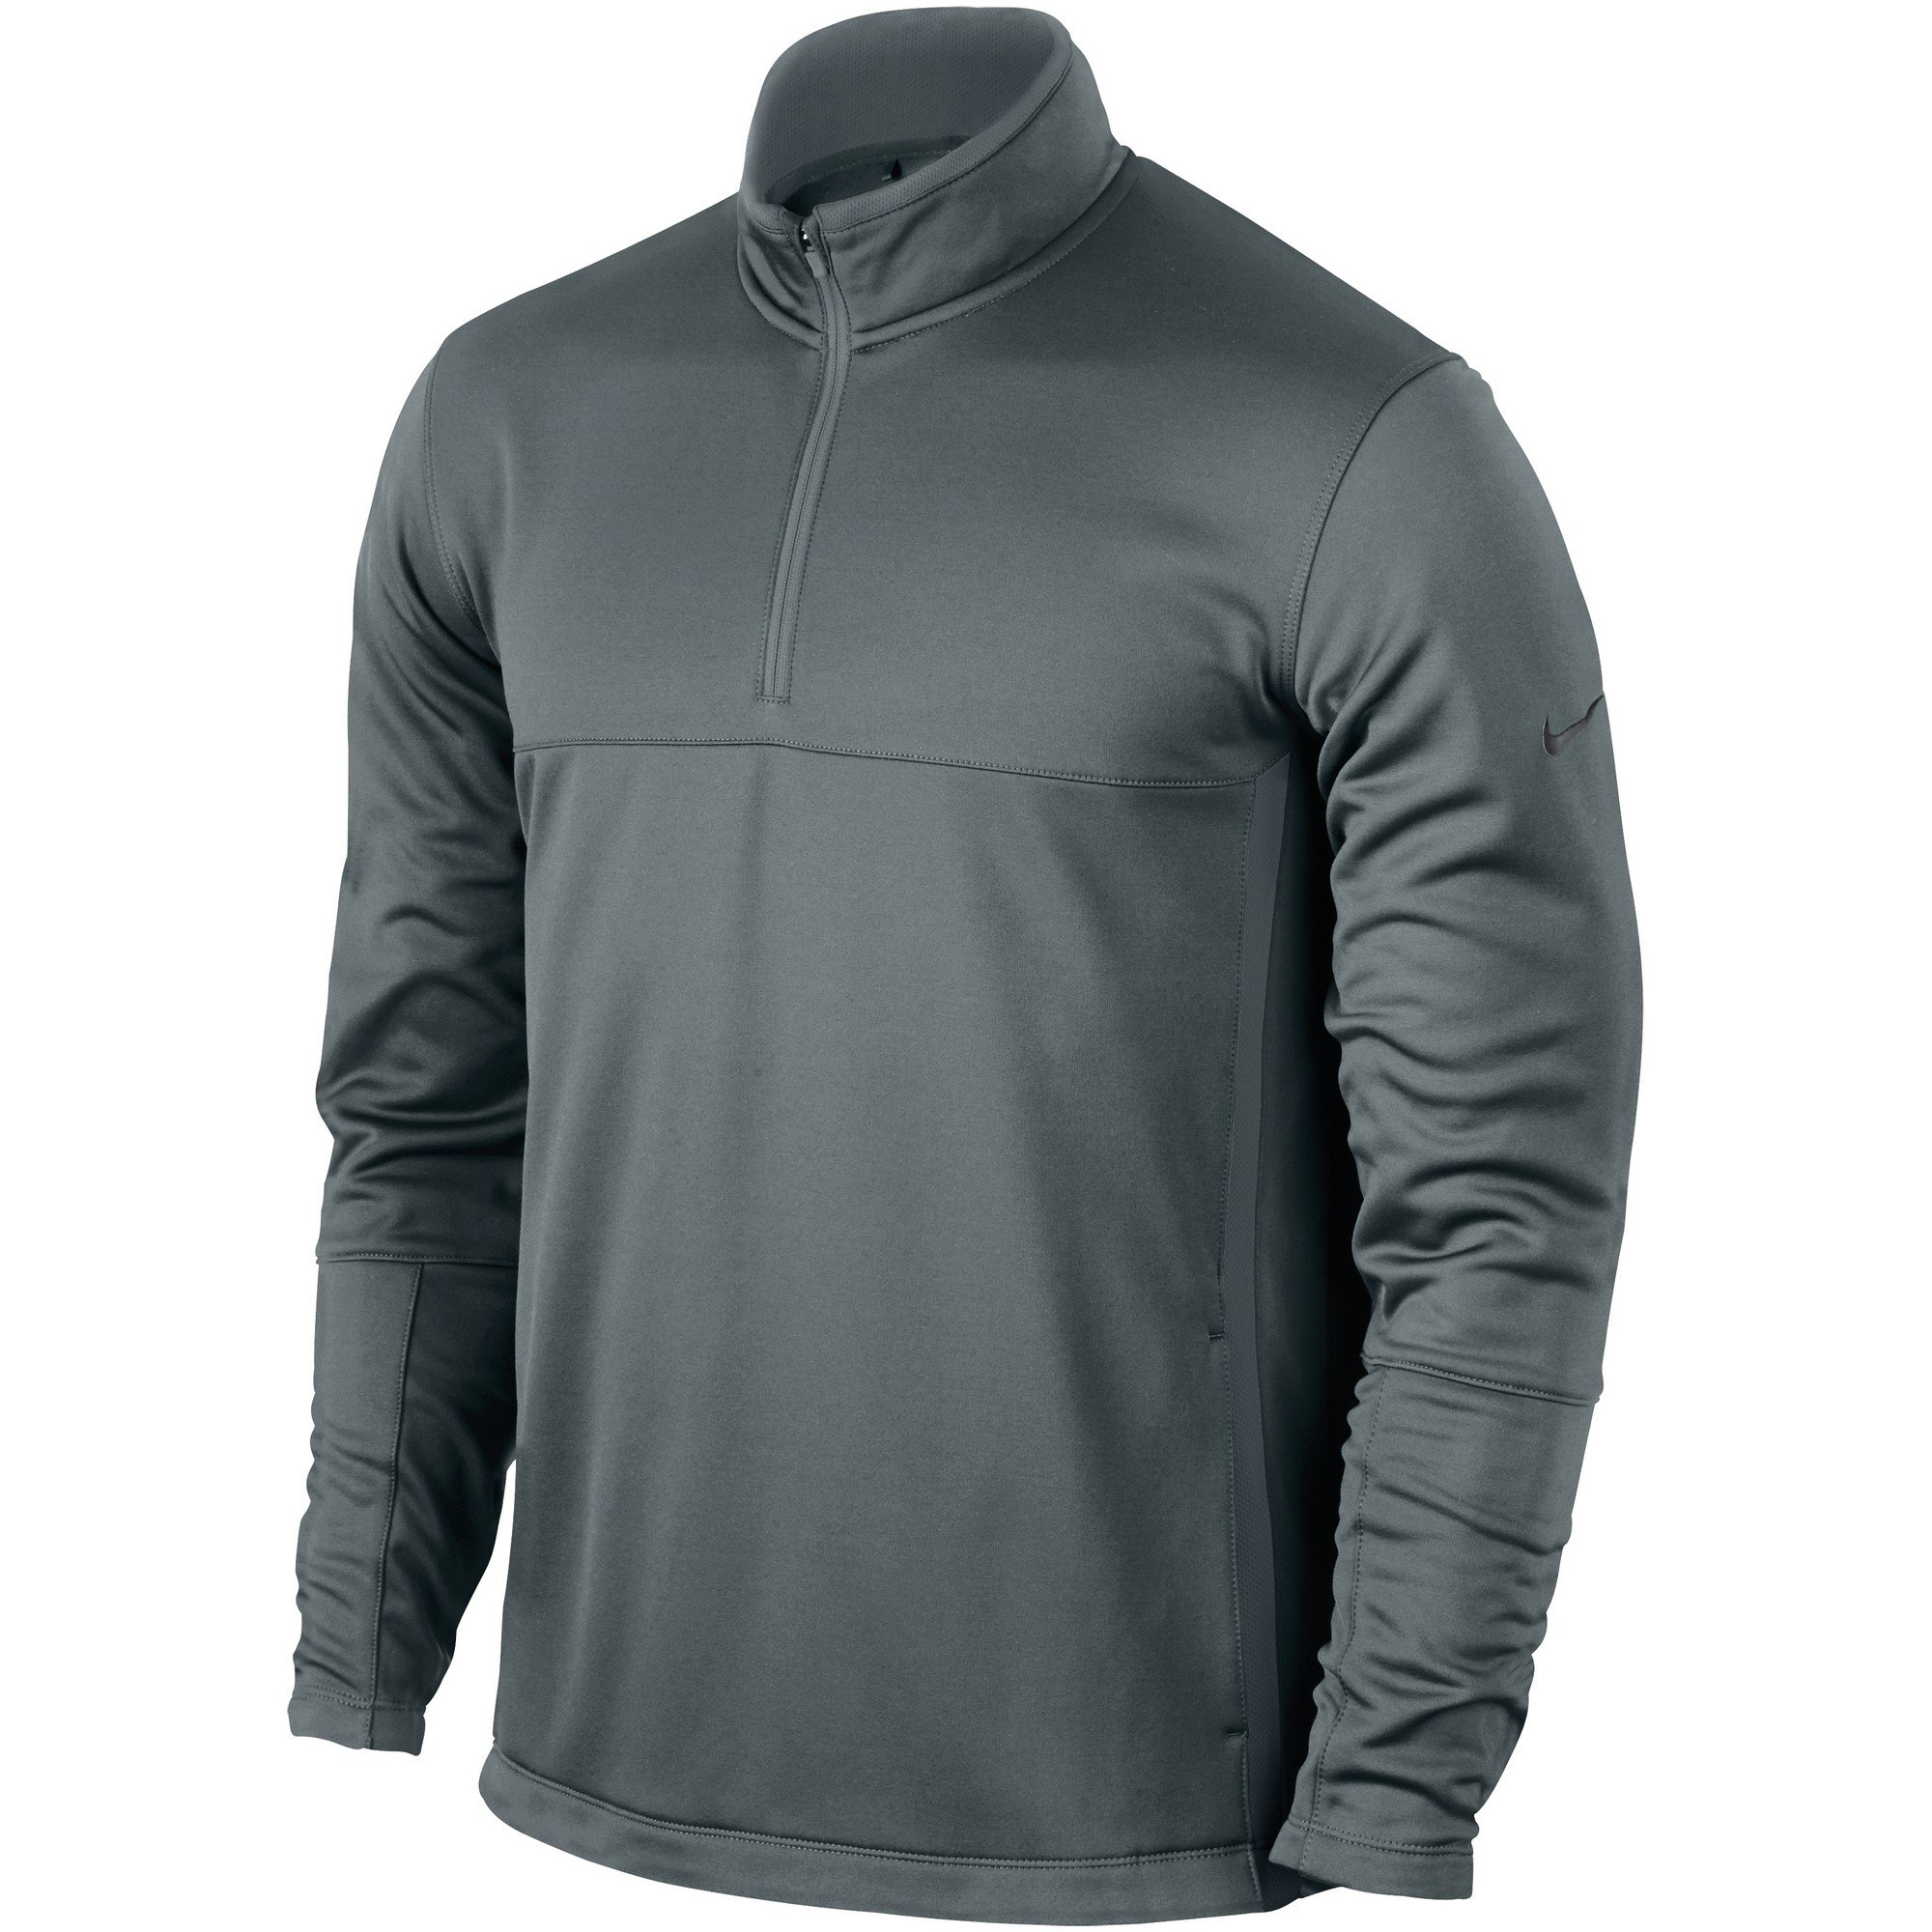 Nike Golf Men's Therma-FIT Cover Cool Grey/Anthracite, MD by Nike Golf